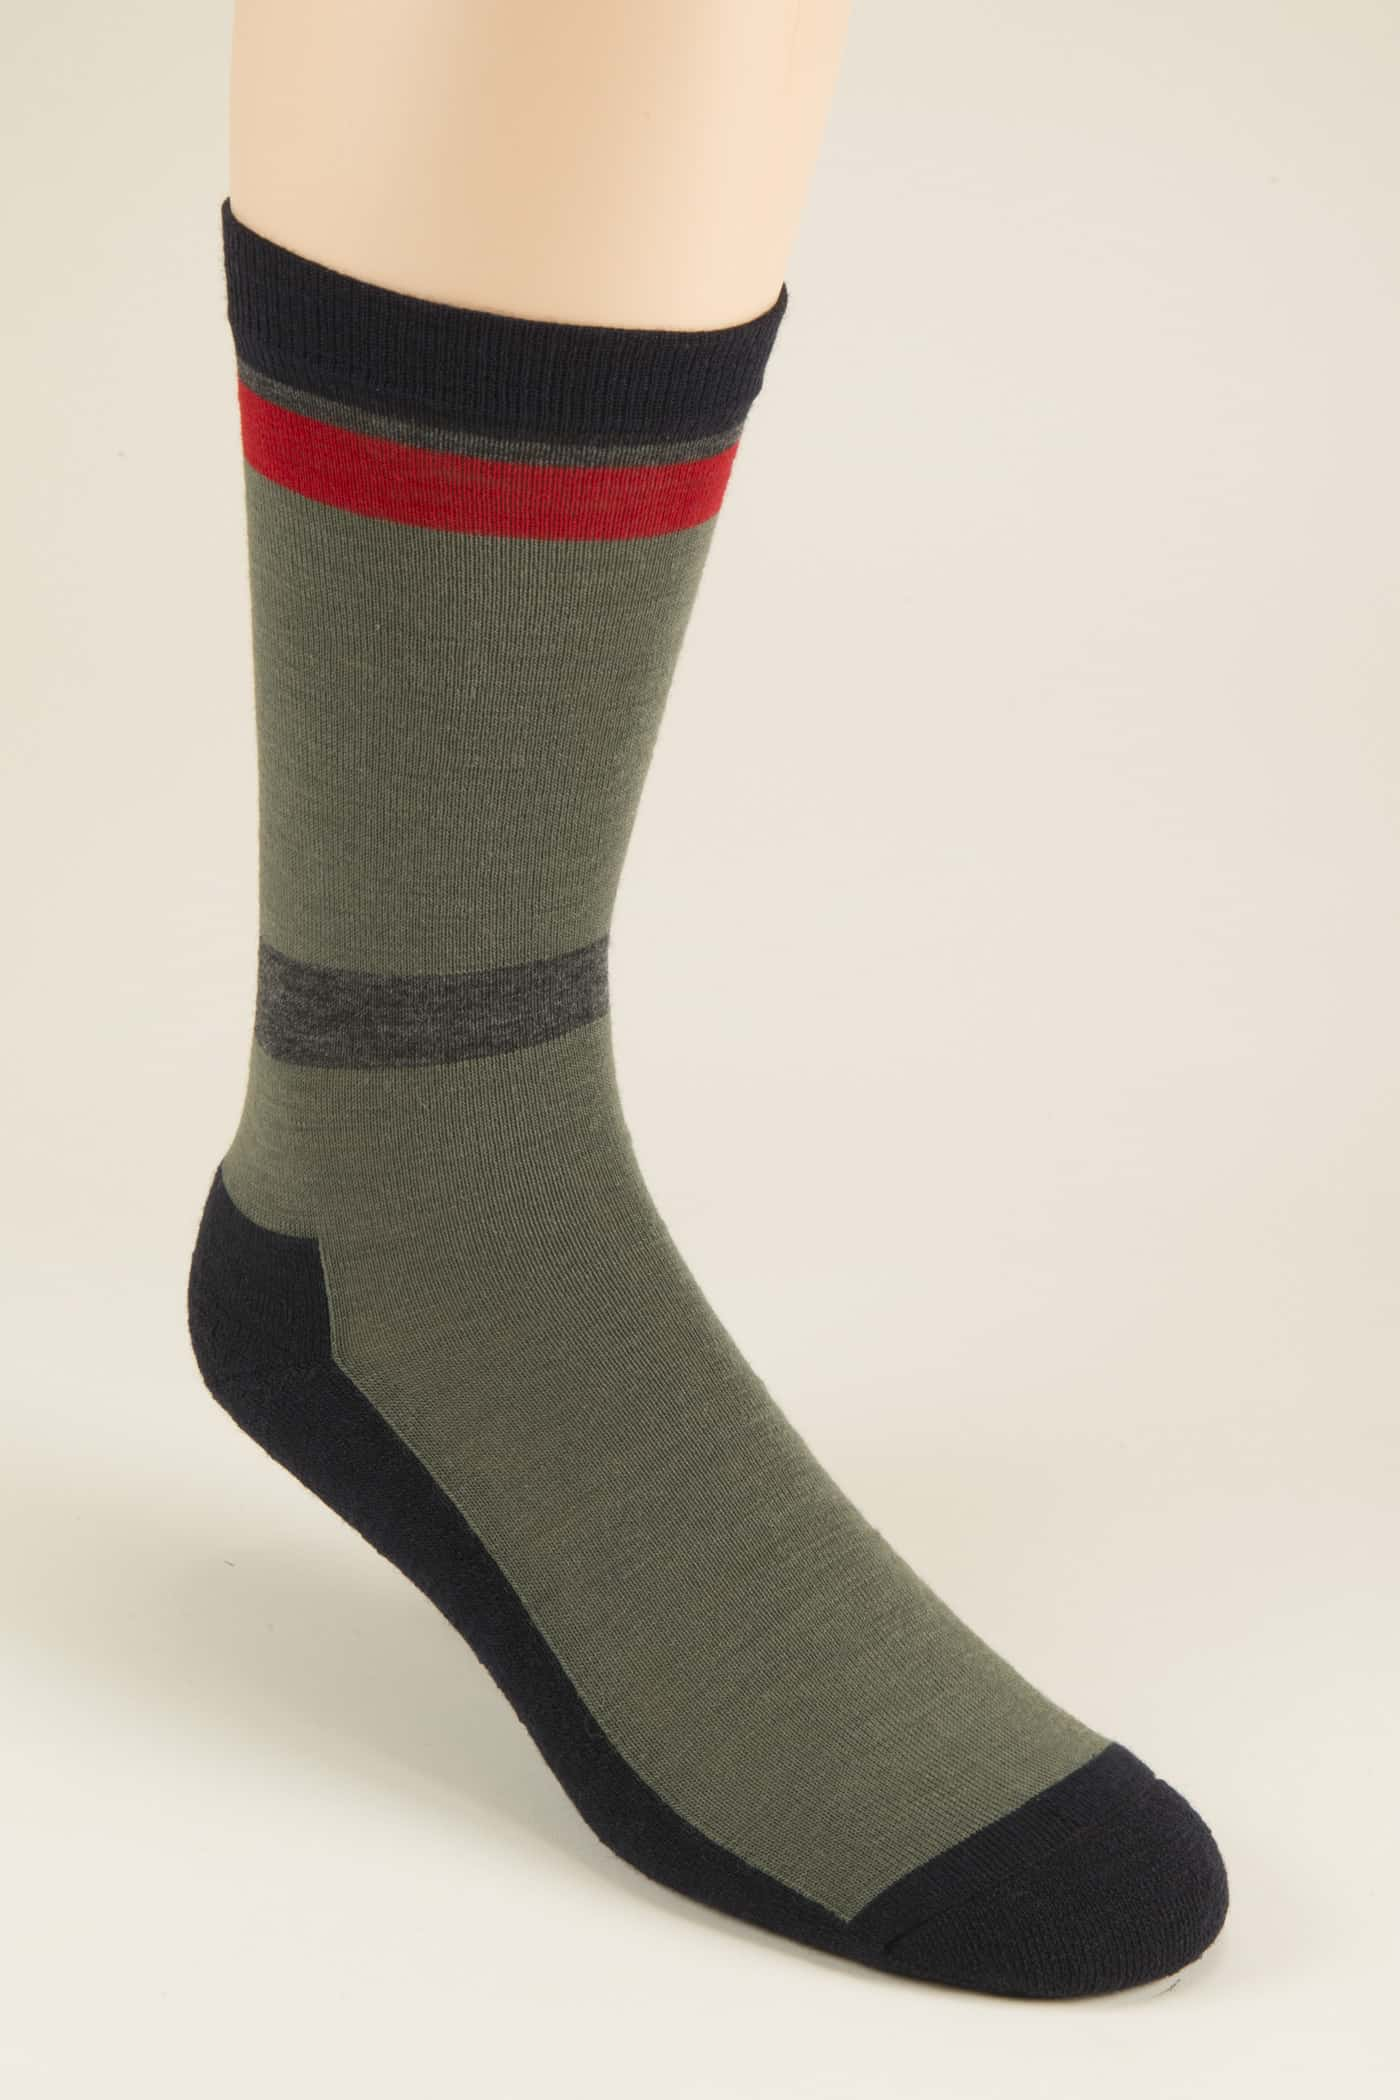 Hartington-B-Black-Grey-Red